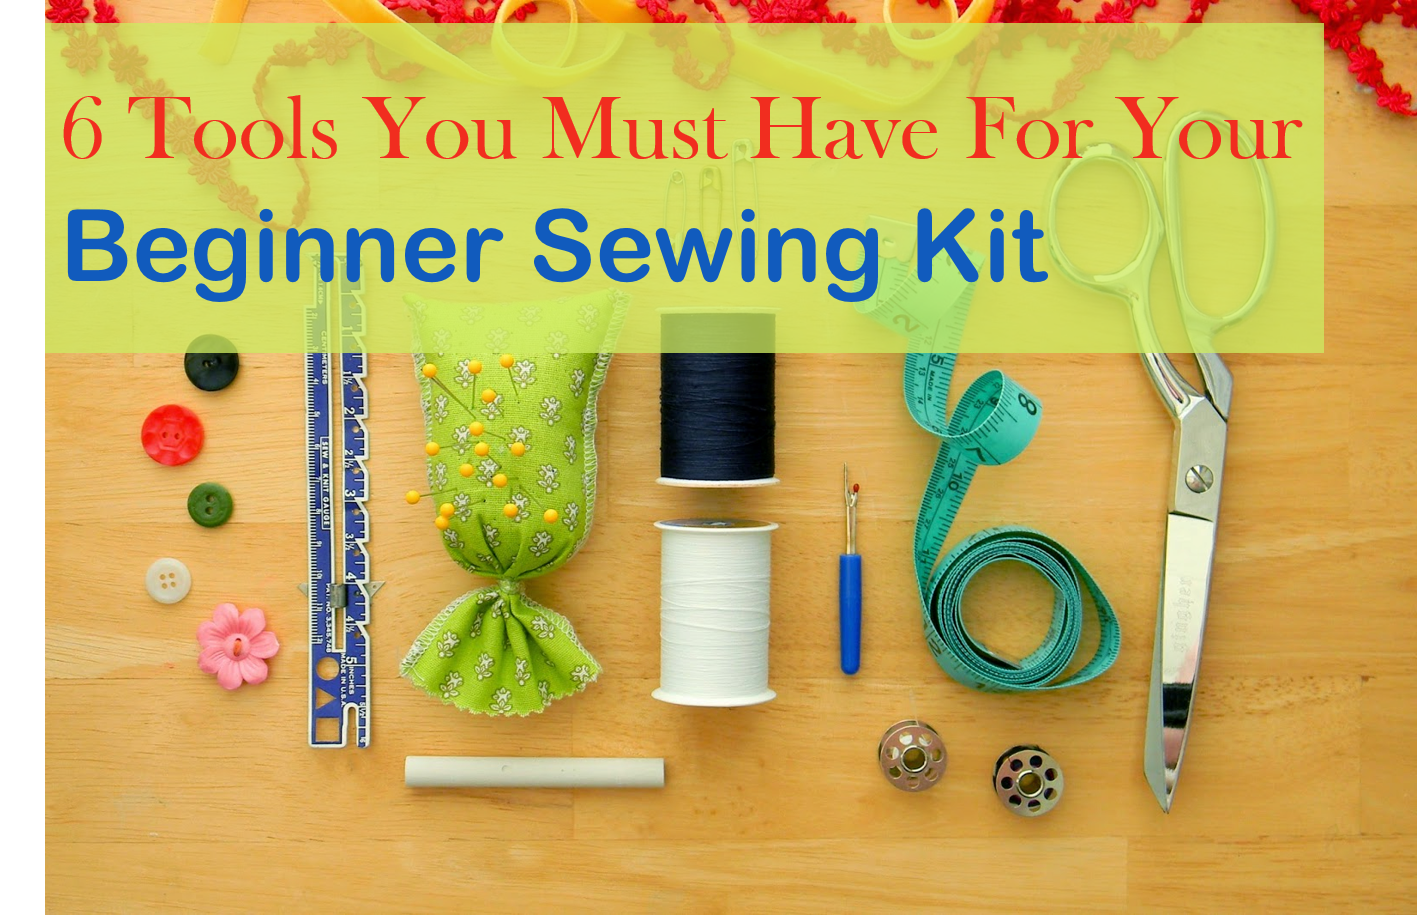 The Six tools you must have for Your Beginner Sewing Kit